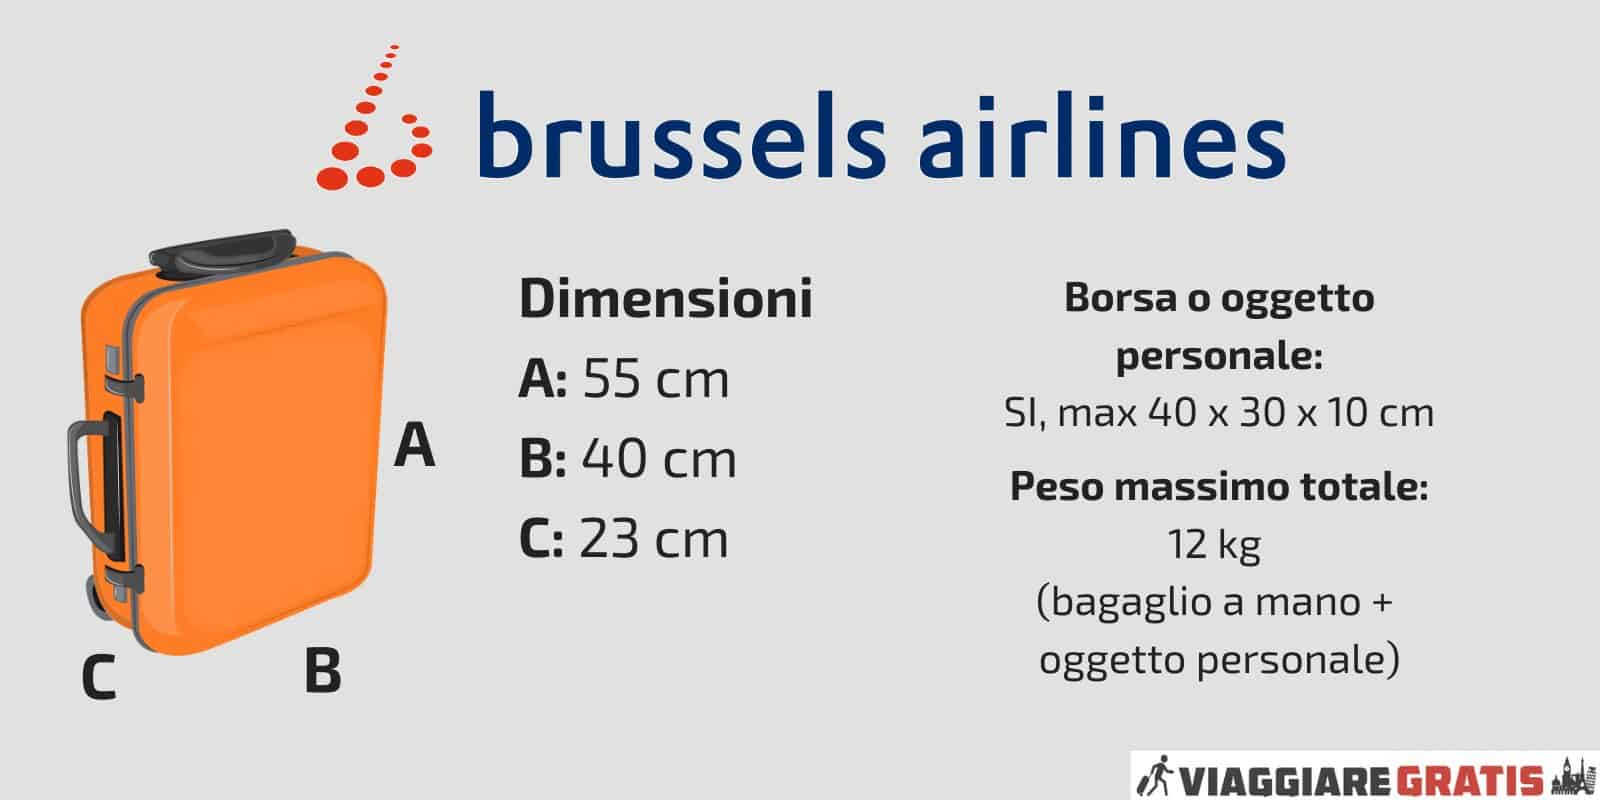 Bagaglio a Mano Brussels Airlines